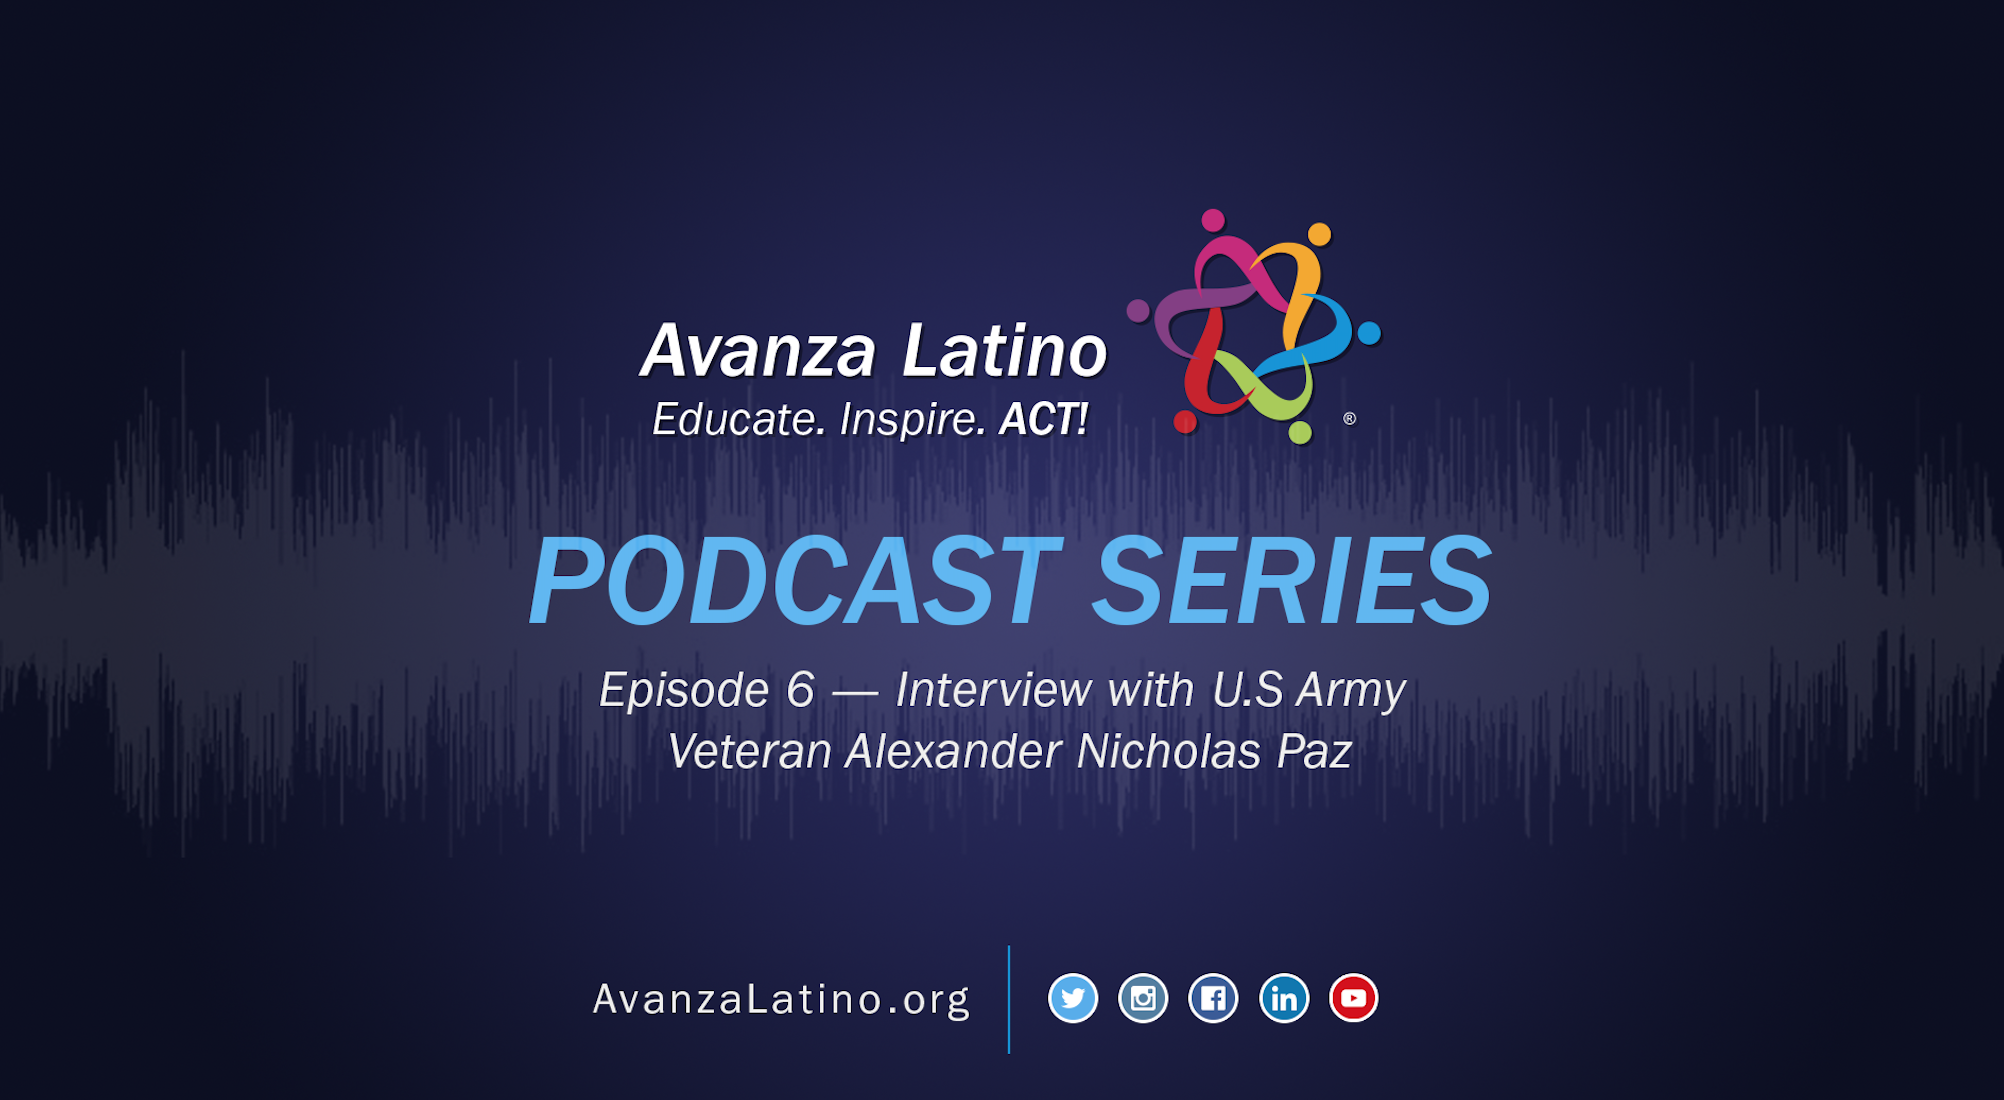 Avanza Latino Podcast: Interview with U.S Army Veteran Alexander Nicholas Paz